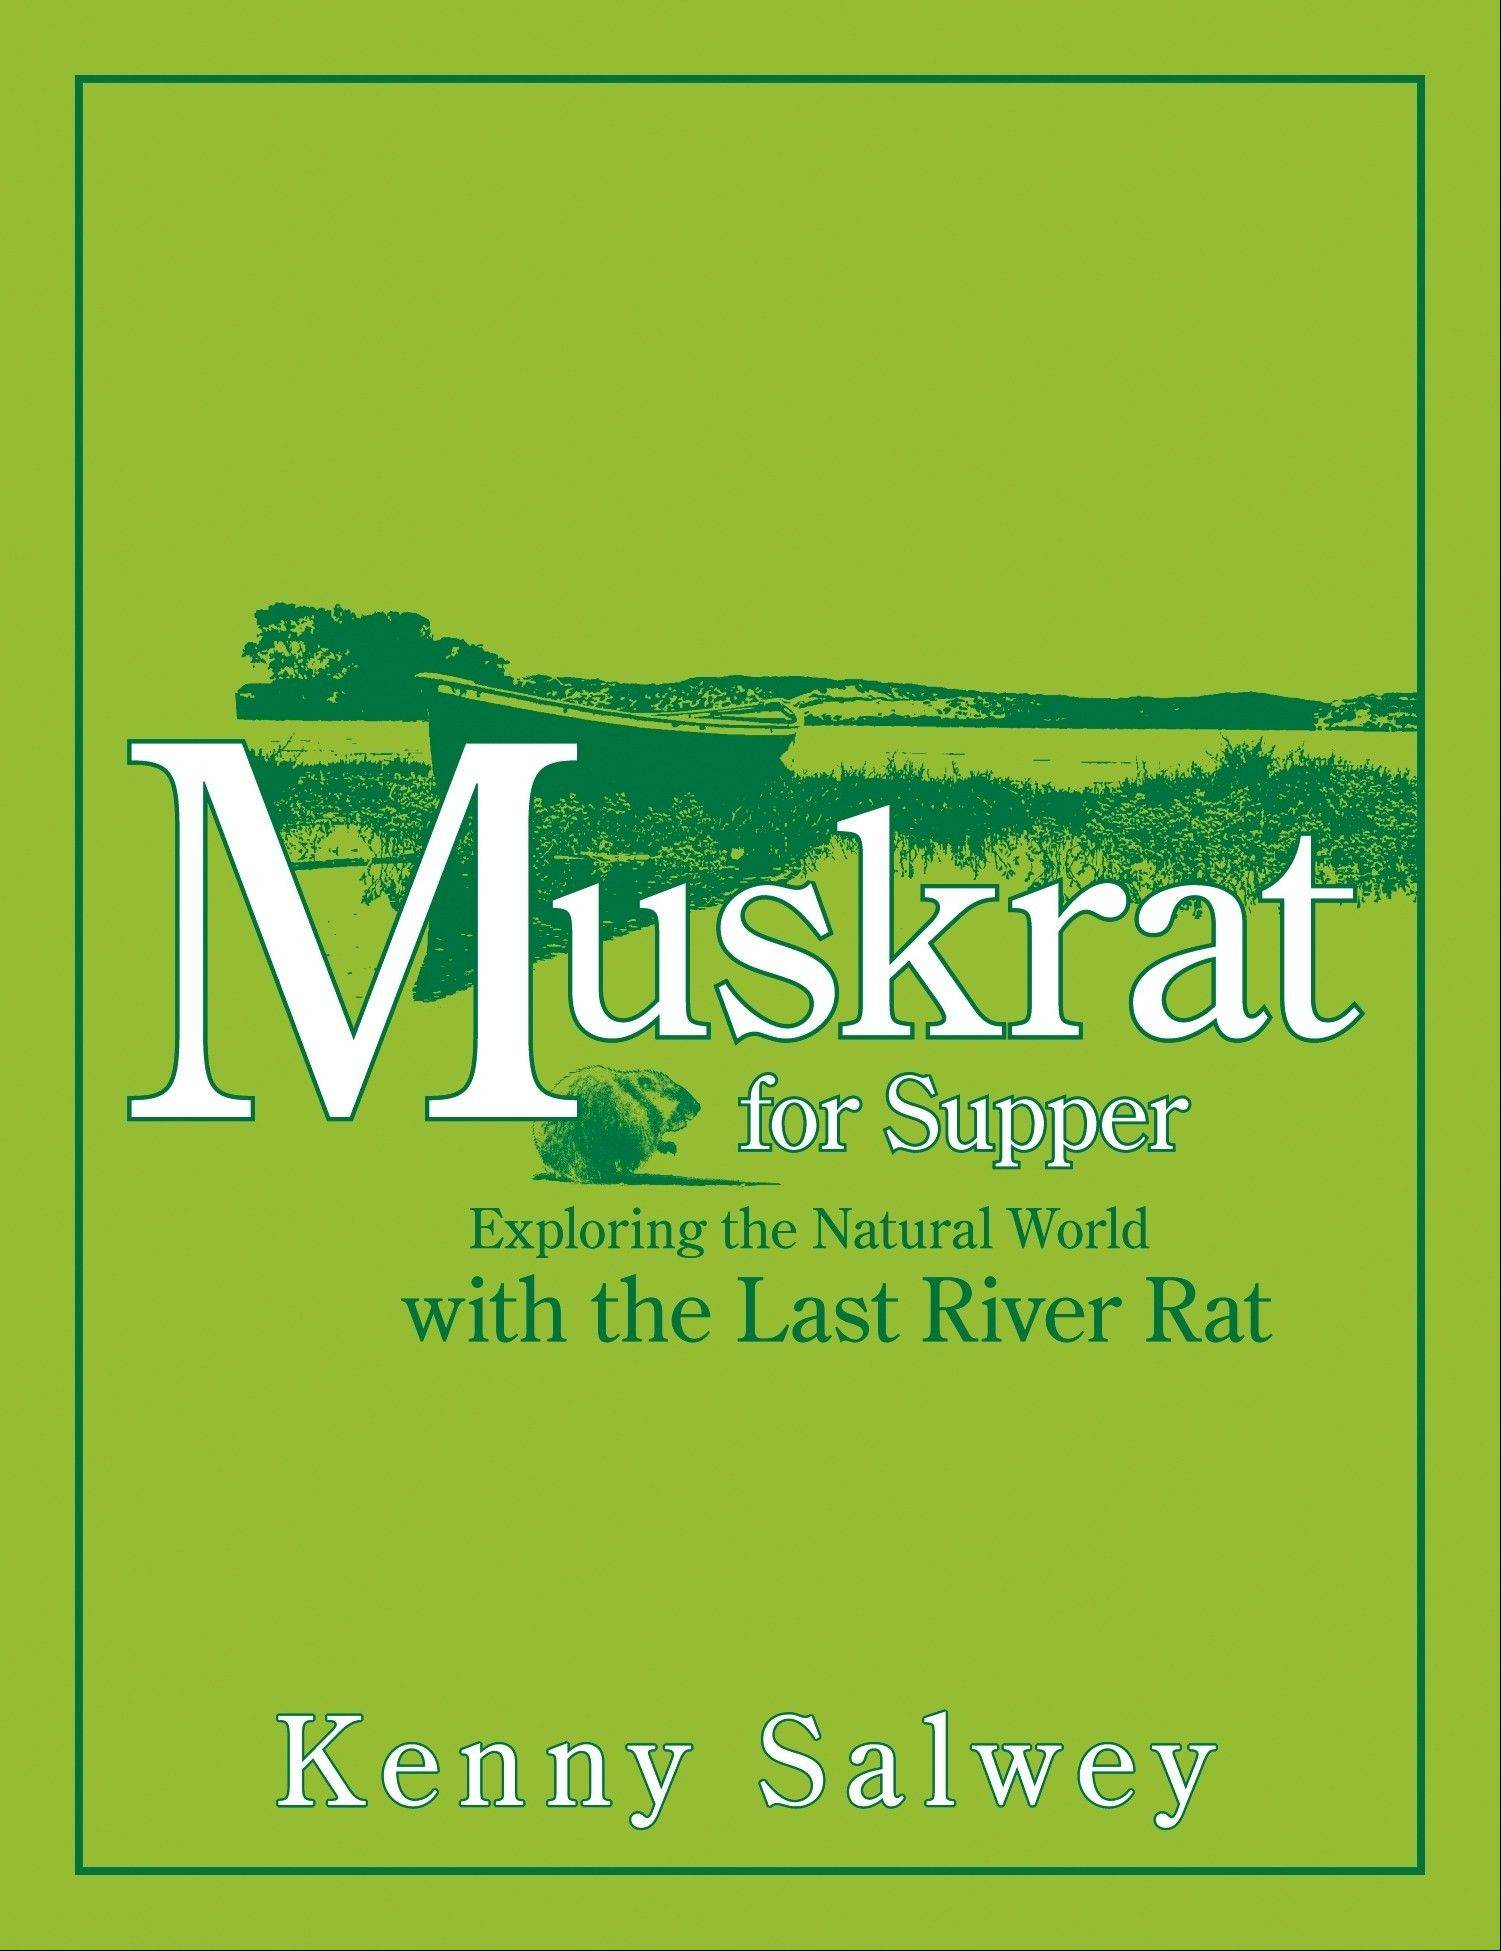 """Muskrat for Supper"" by Kenny Salwey (Fulcrum Publishing, 2012), $12.95, 145 pages."